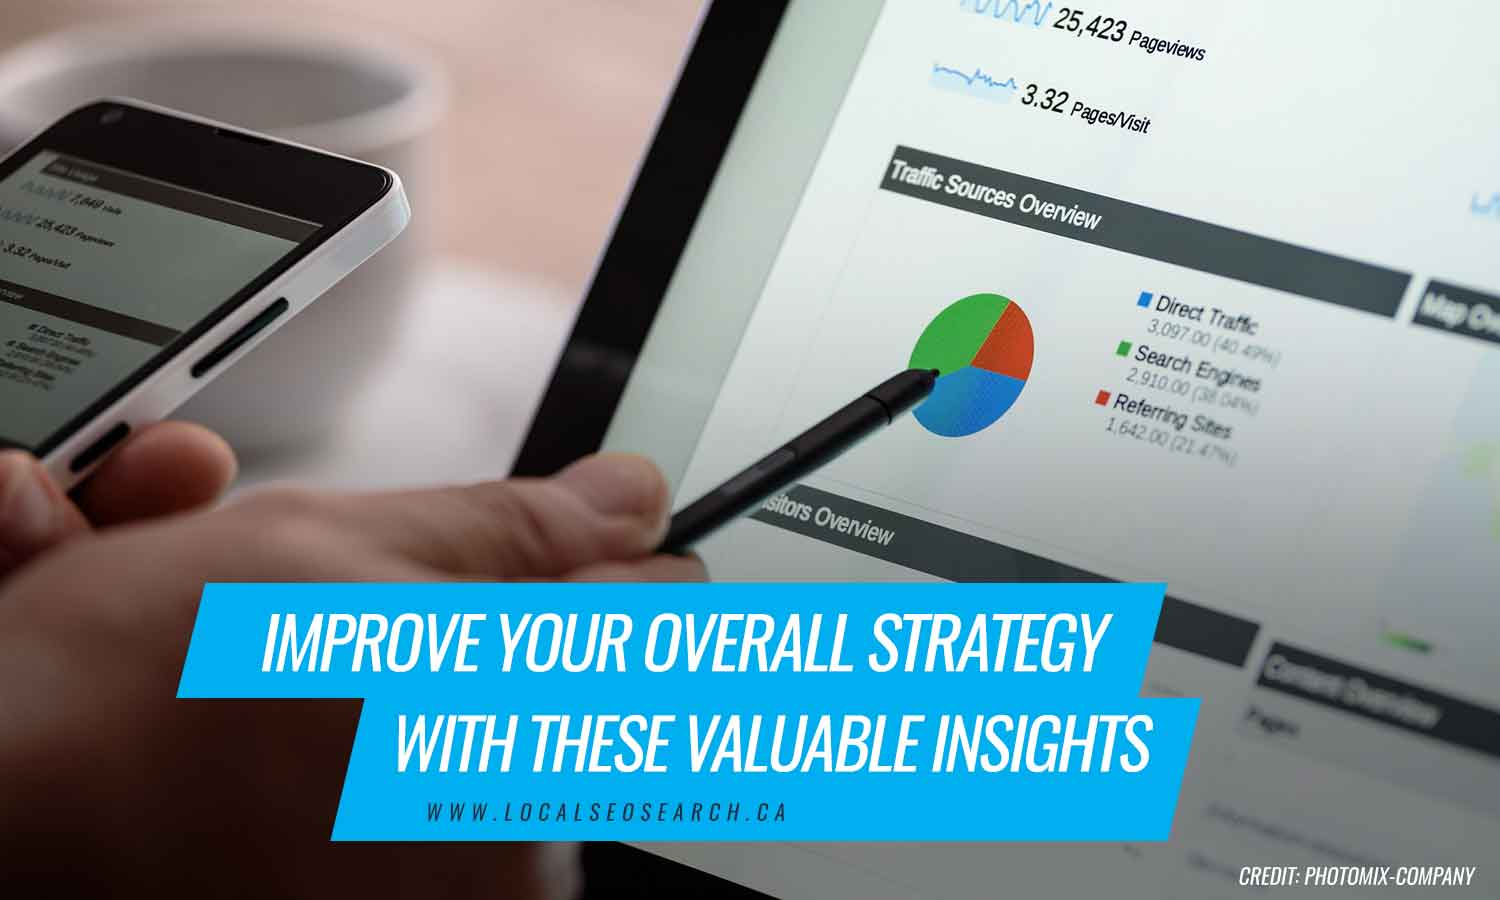 Improve your overall strategy